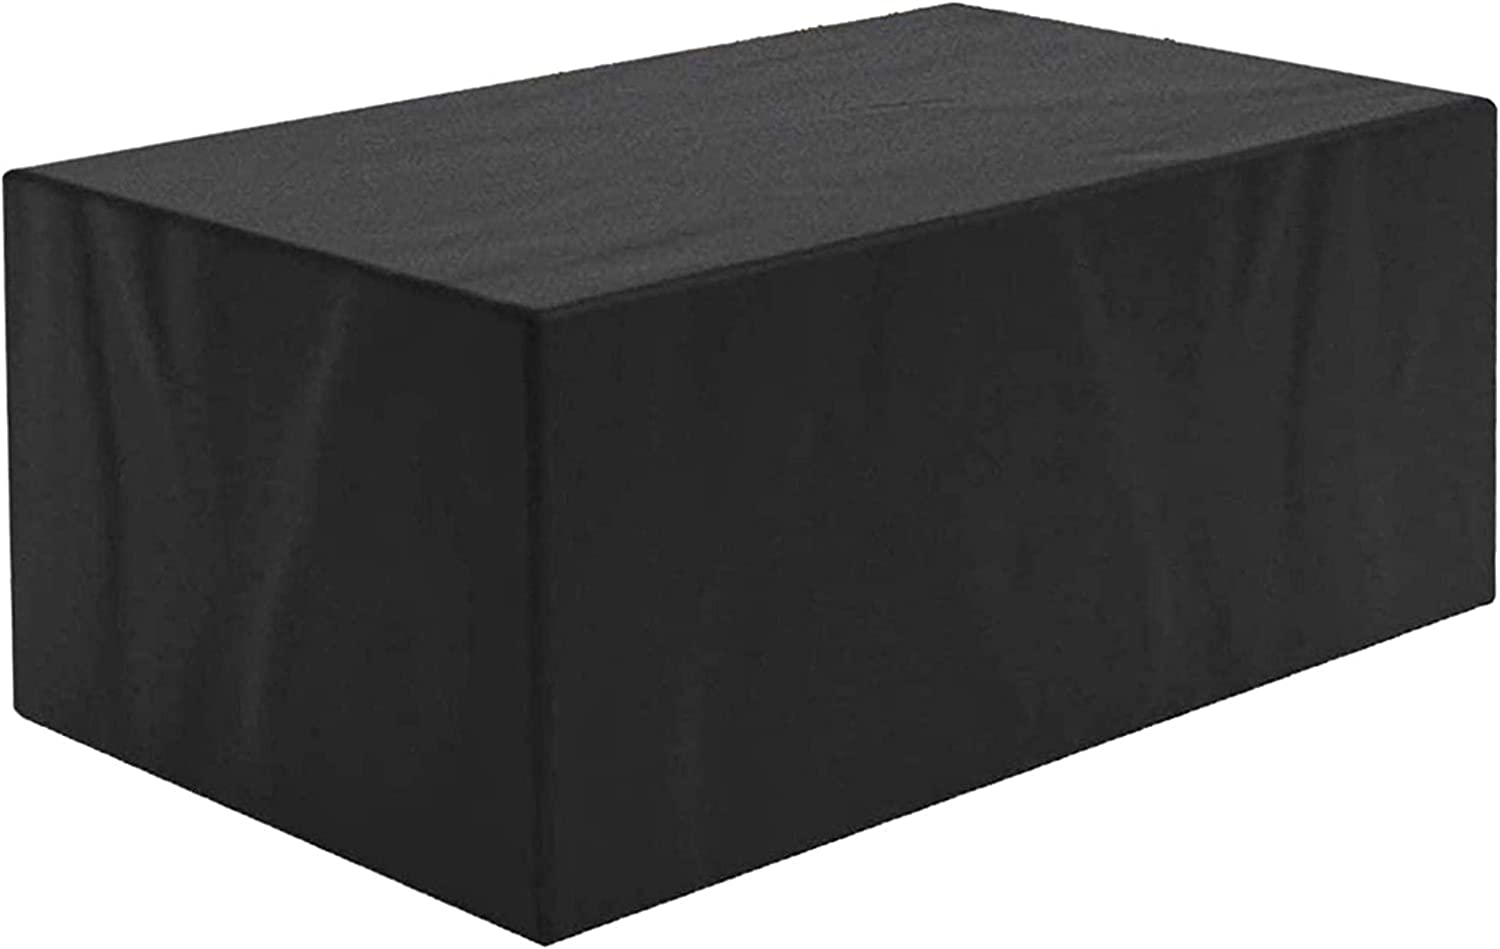 WHCQ In stock Garden Furniture Covers Patio Protective Popular shop is the lowest price challenge W Cover